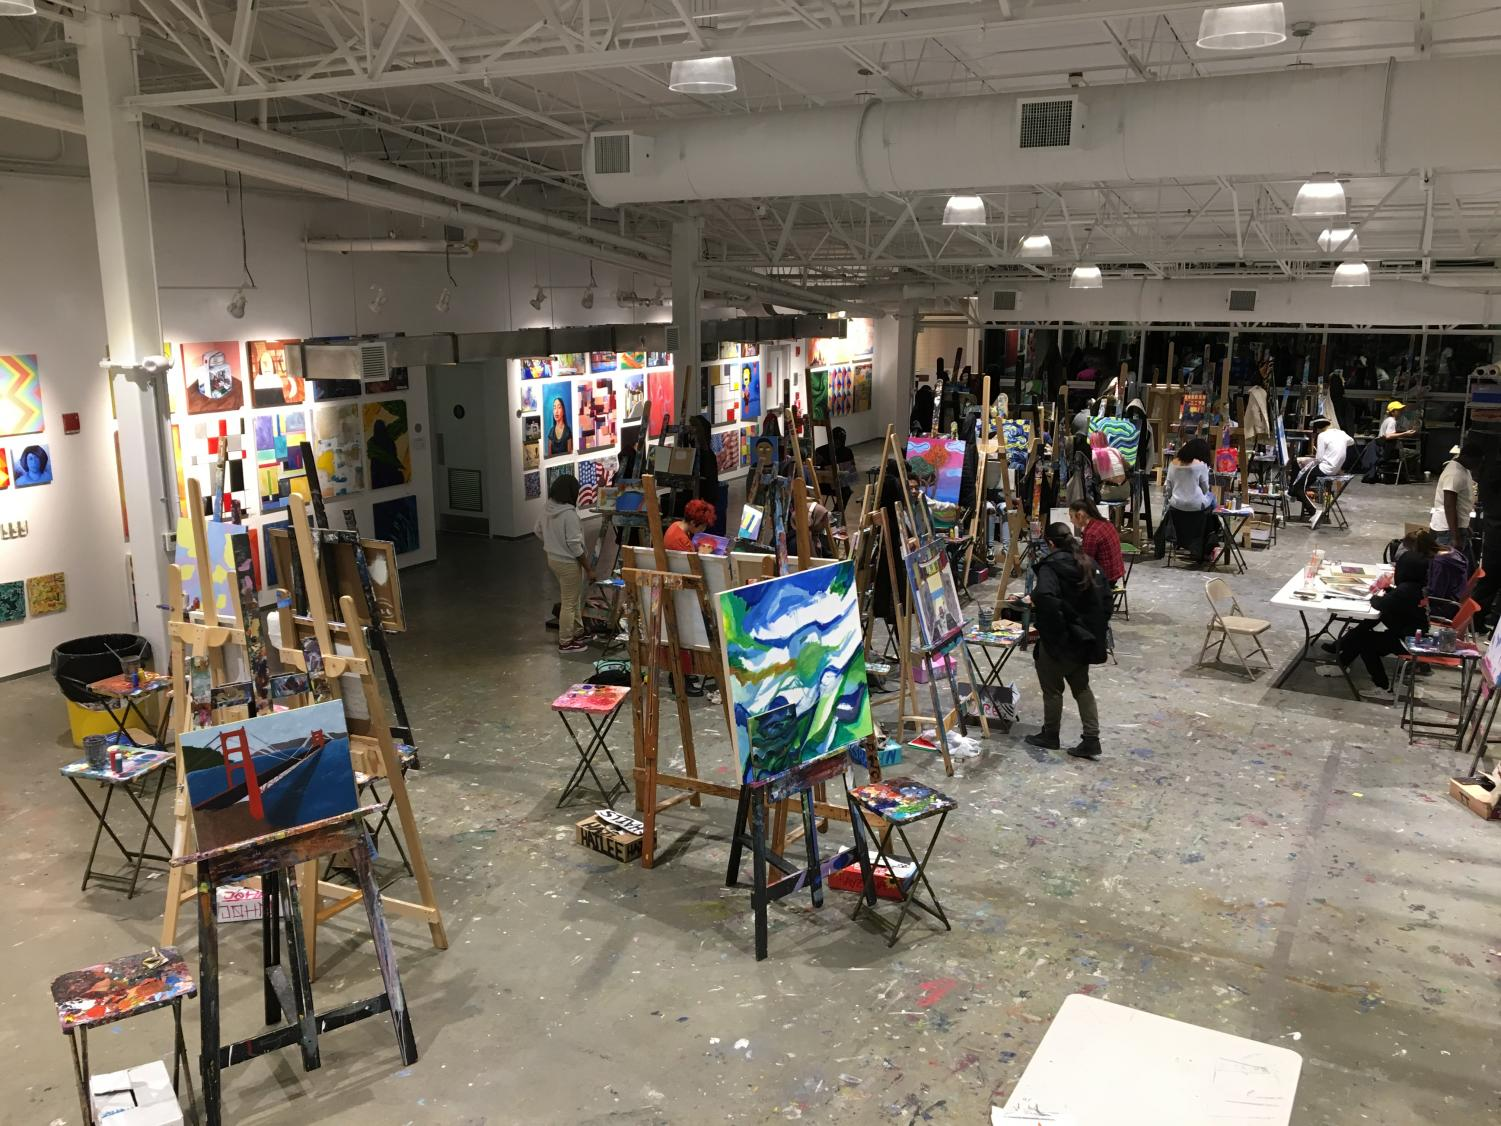 The Artists for Humanity EpiCenter in Boston employs teenage artists to make art using several different types of media such as painting, digital design, photography and sketching.